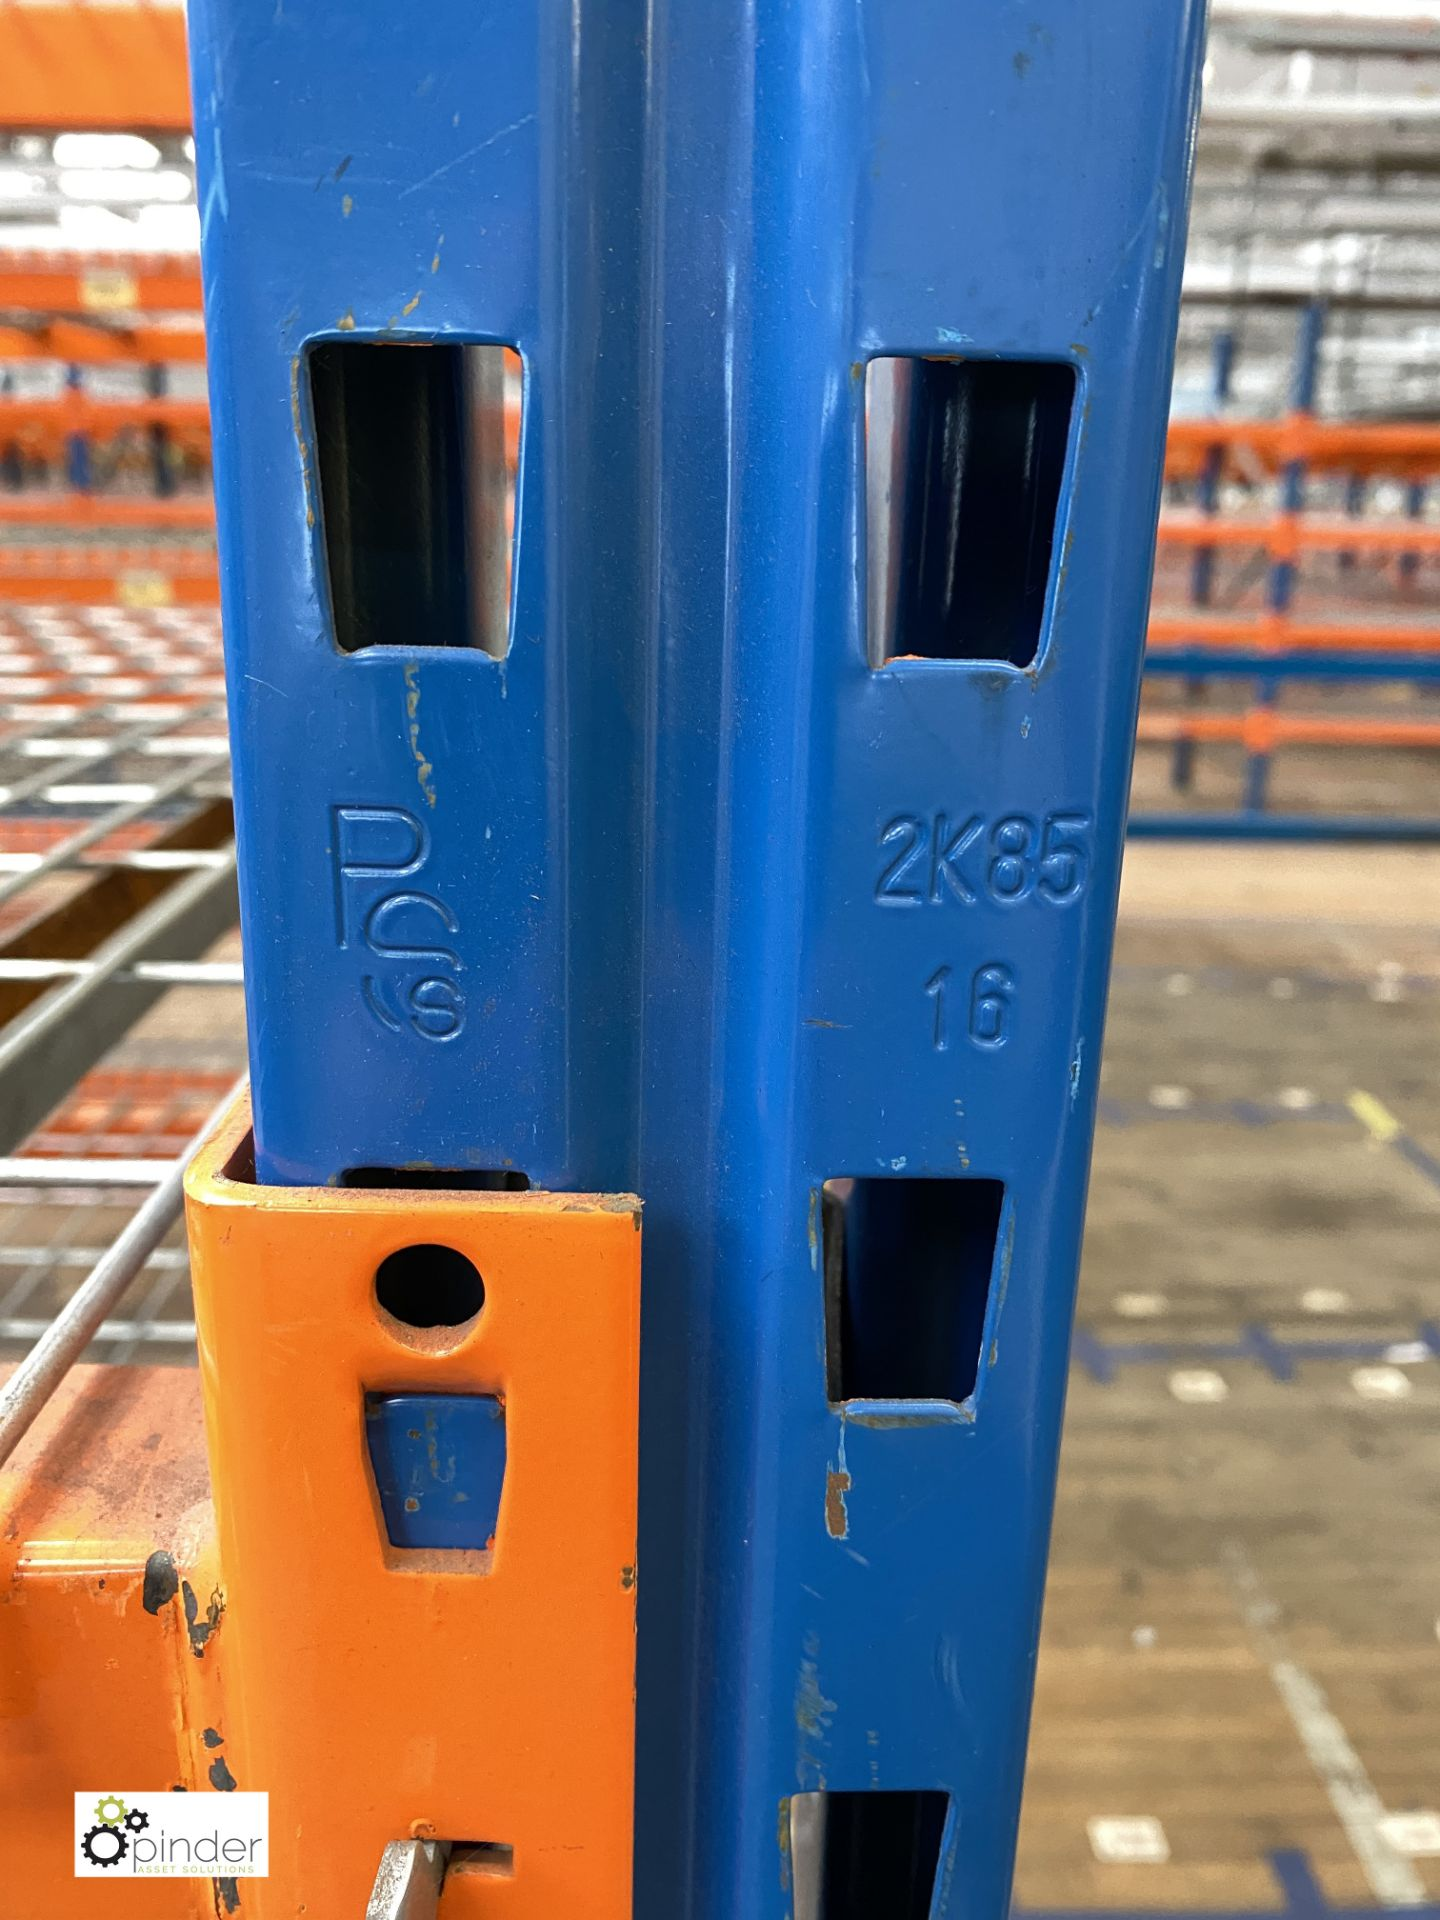 4 bays PSS 2K85 16 boltless Stock Racking, comprising 5 uprights 2400mm x 1200mm, 32 beams 2700mm, - Image 4 of 4